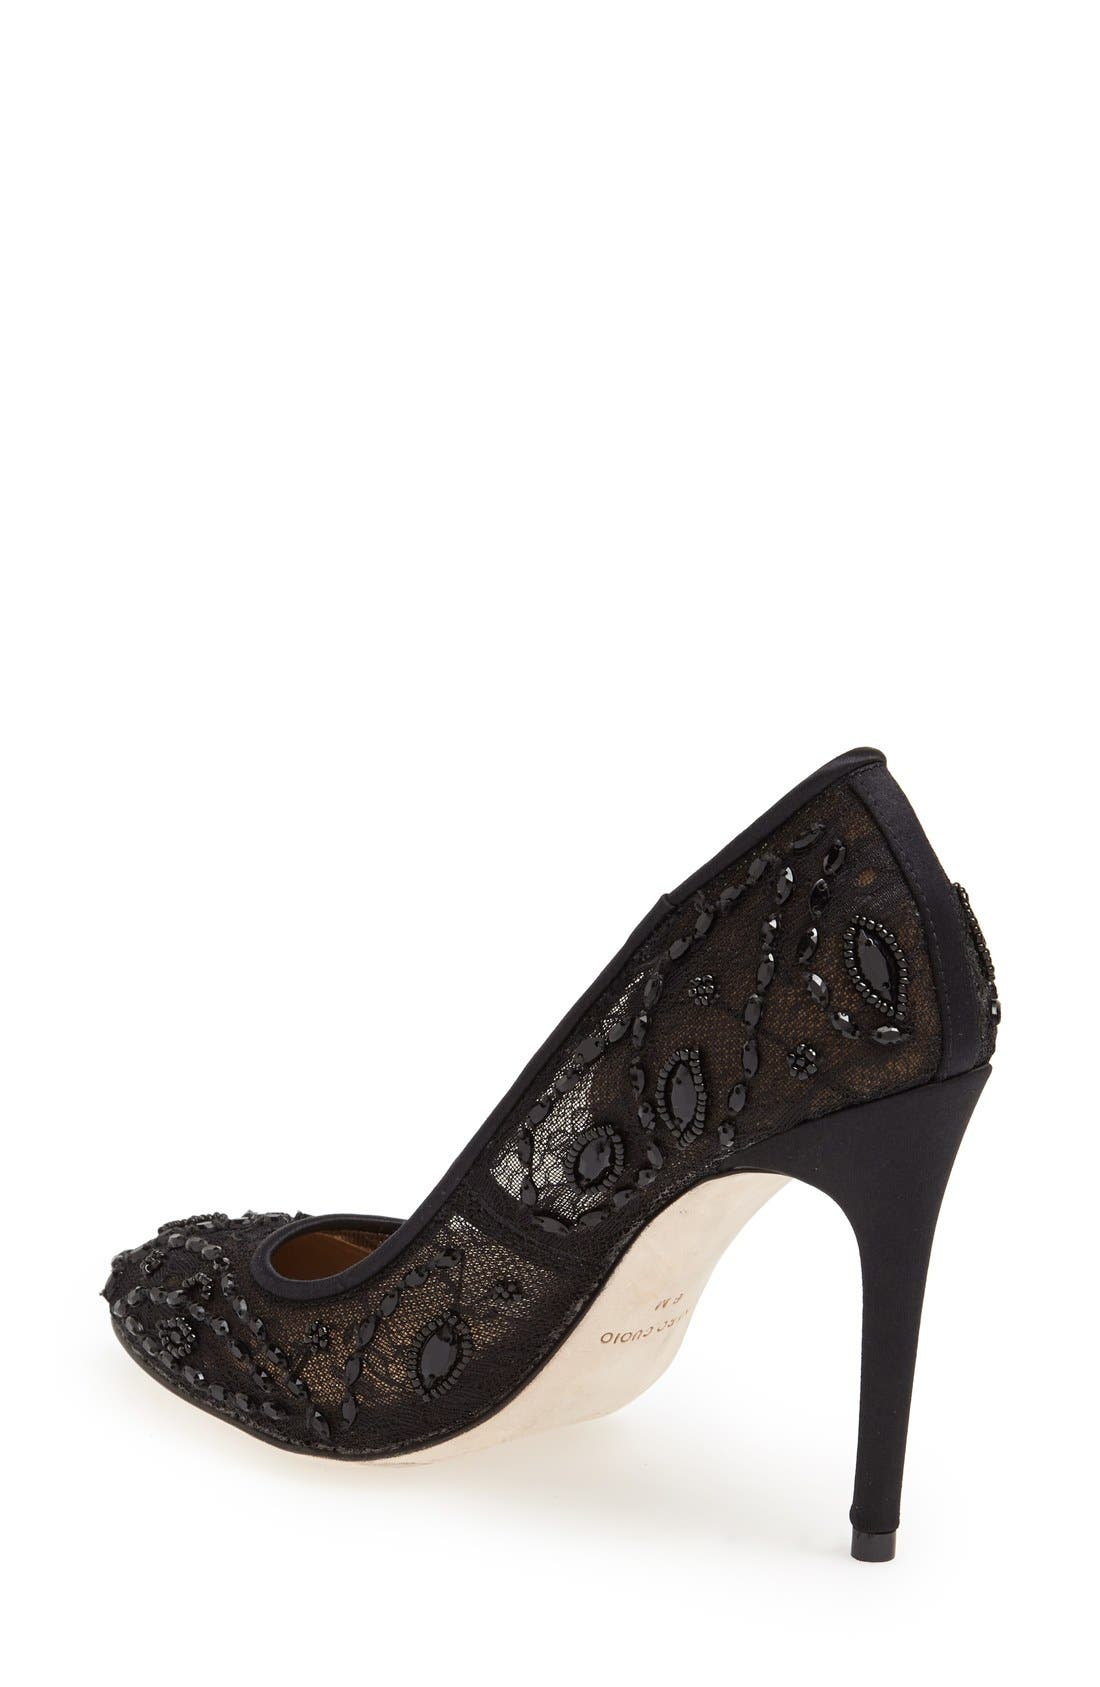 Alternate Image 2  - BCBGMAXAZRIA 'Bettie' Pump (Women)